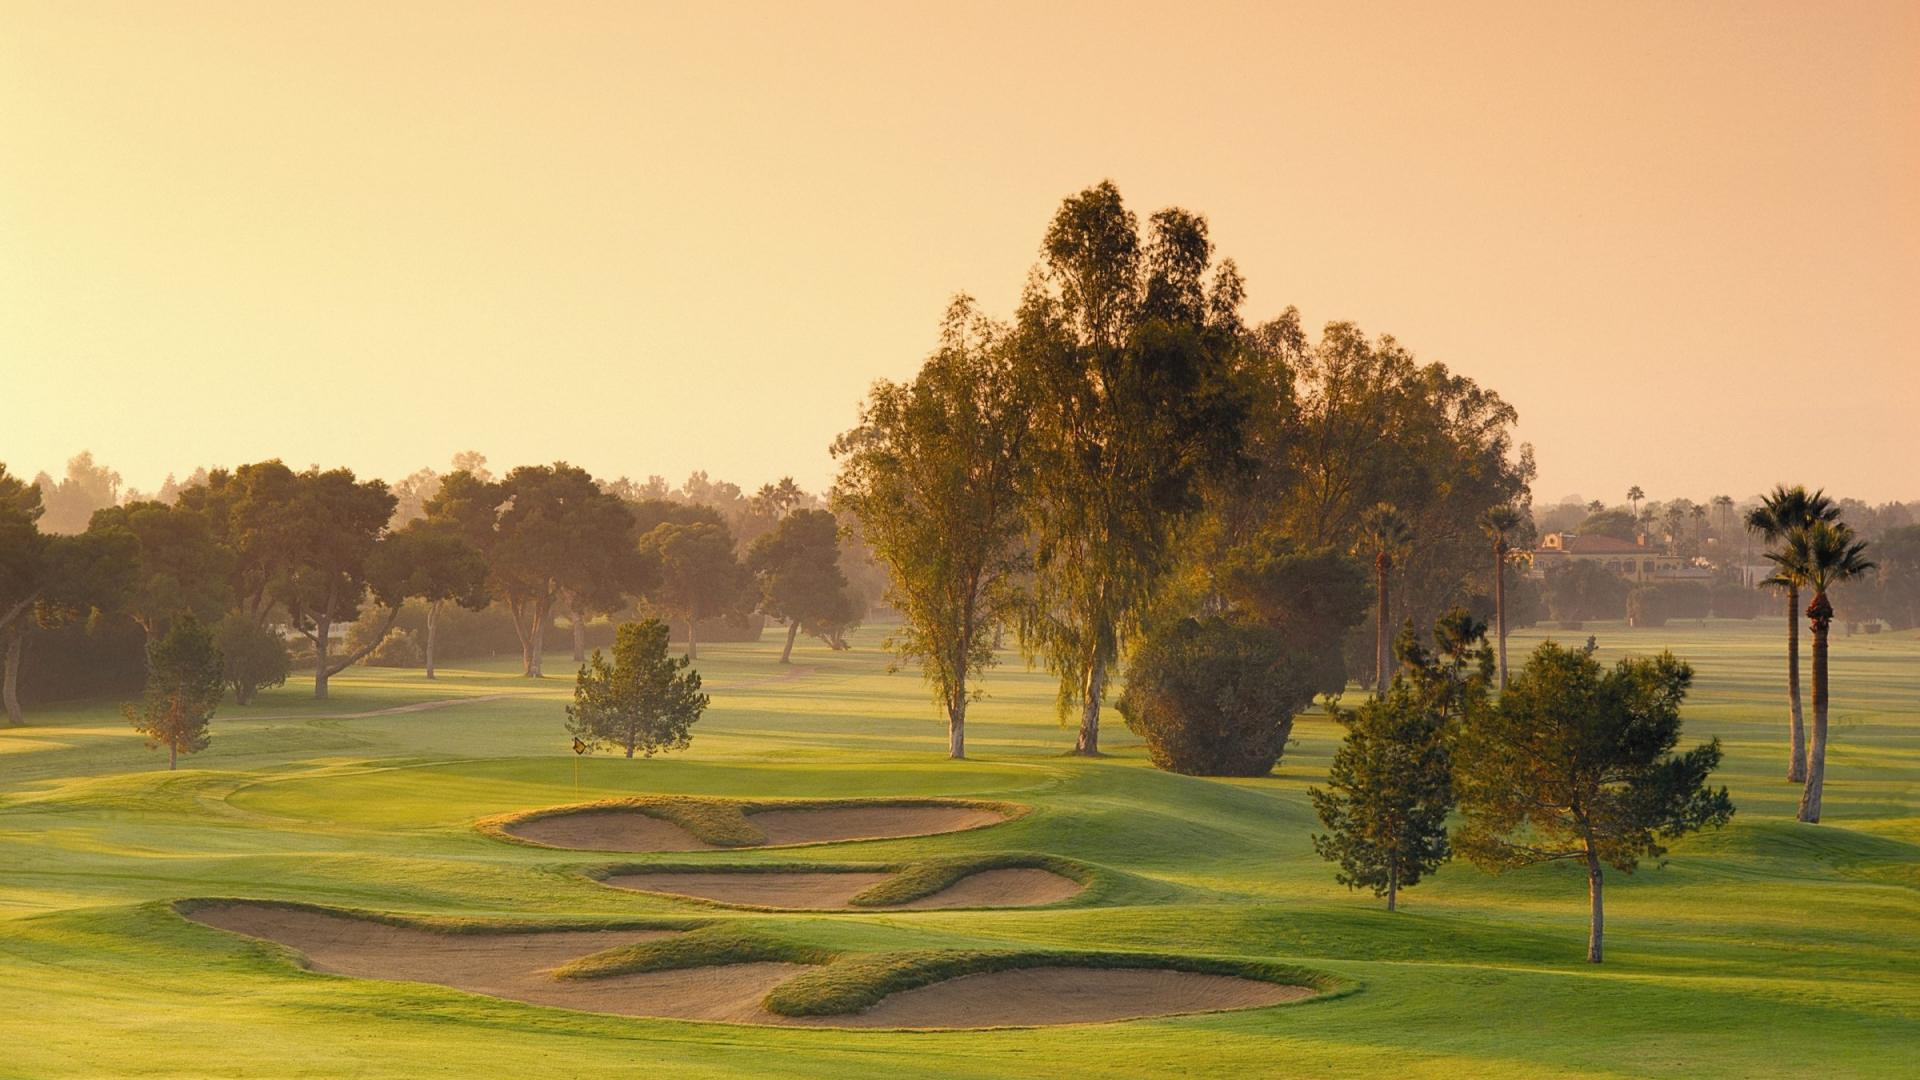 Golf Course Hd Wallpapers Download in Many size availability from 600 1920x1080